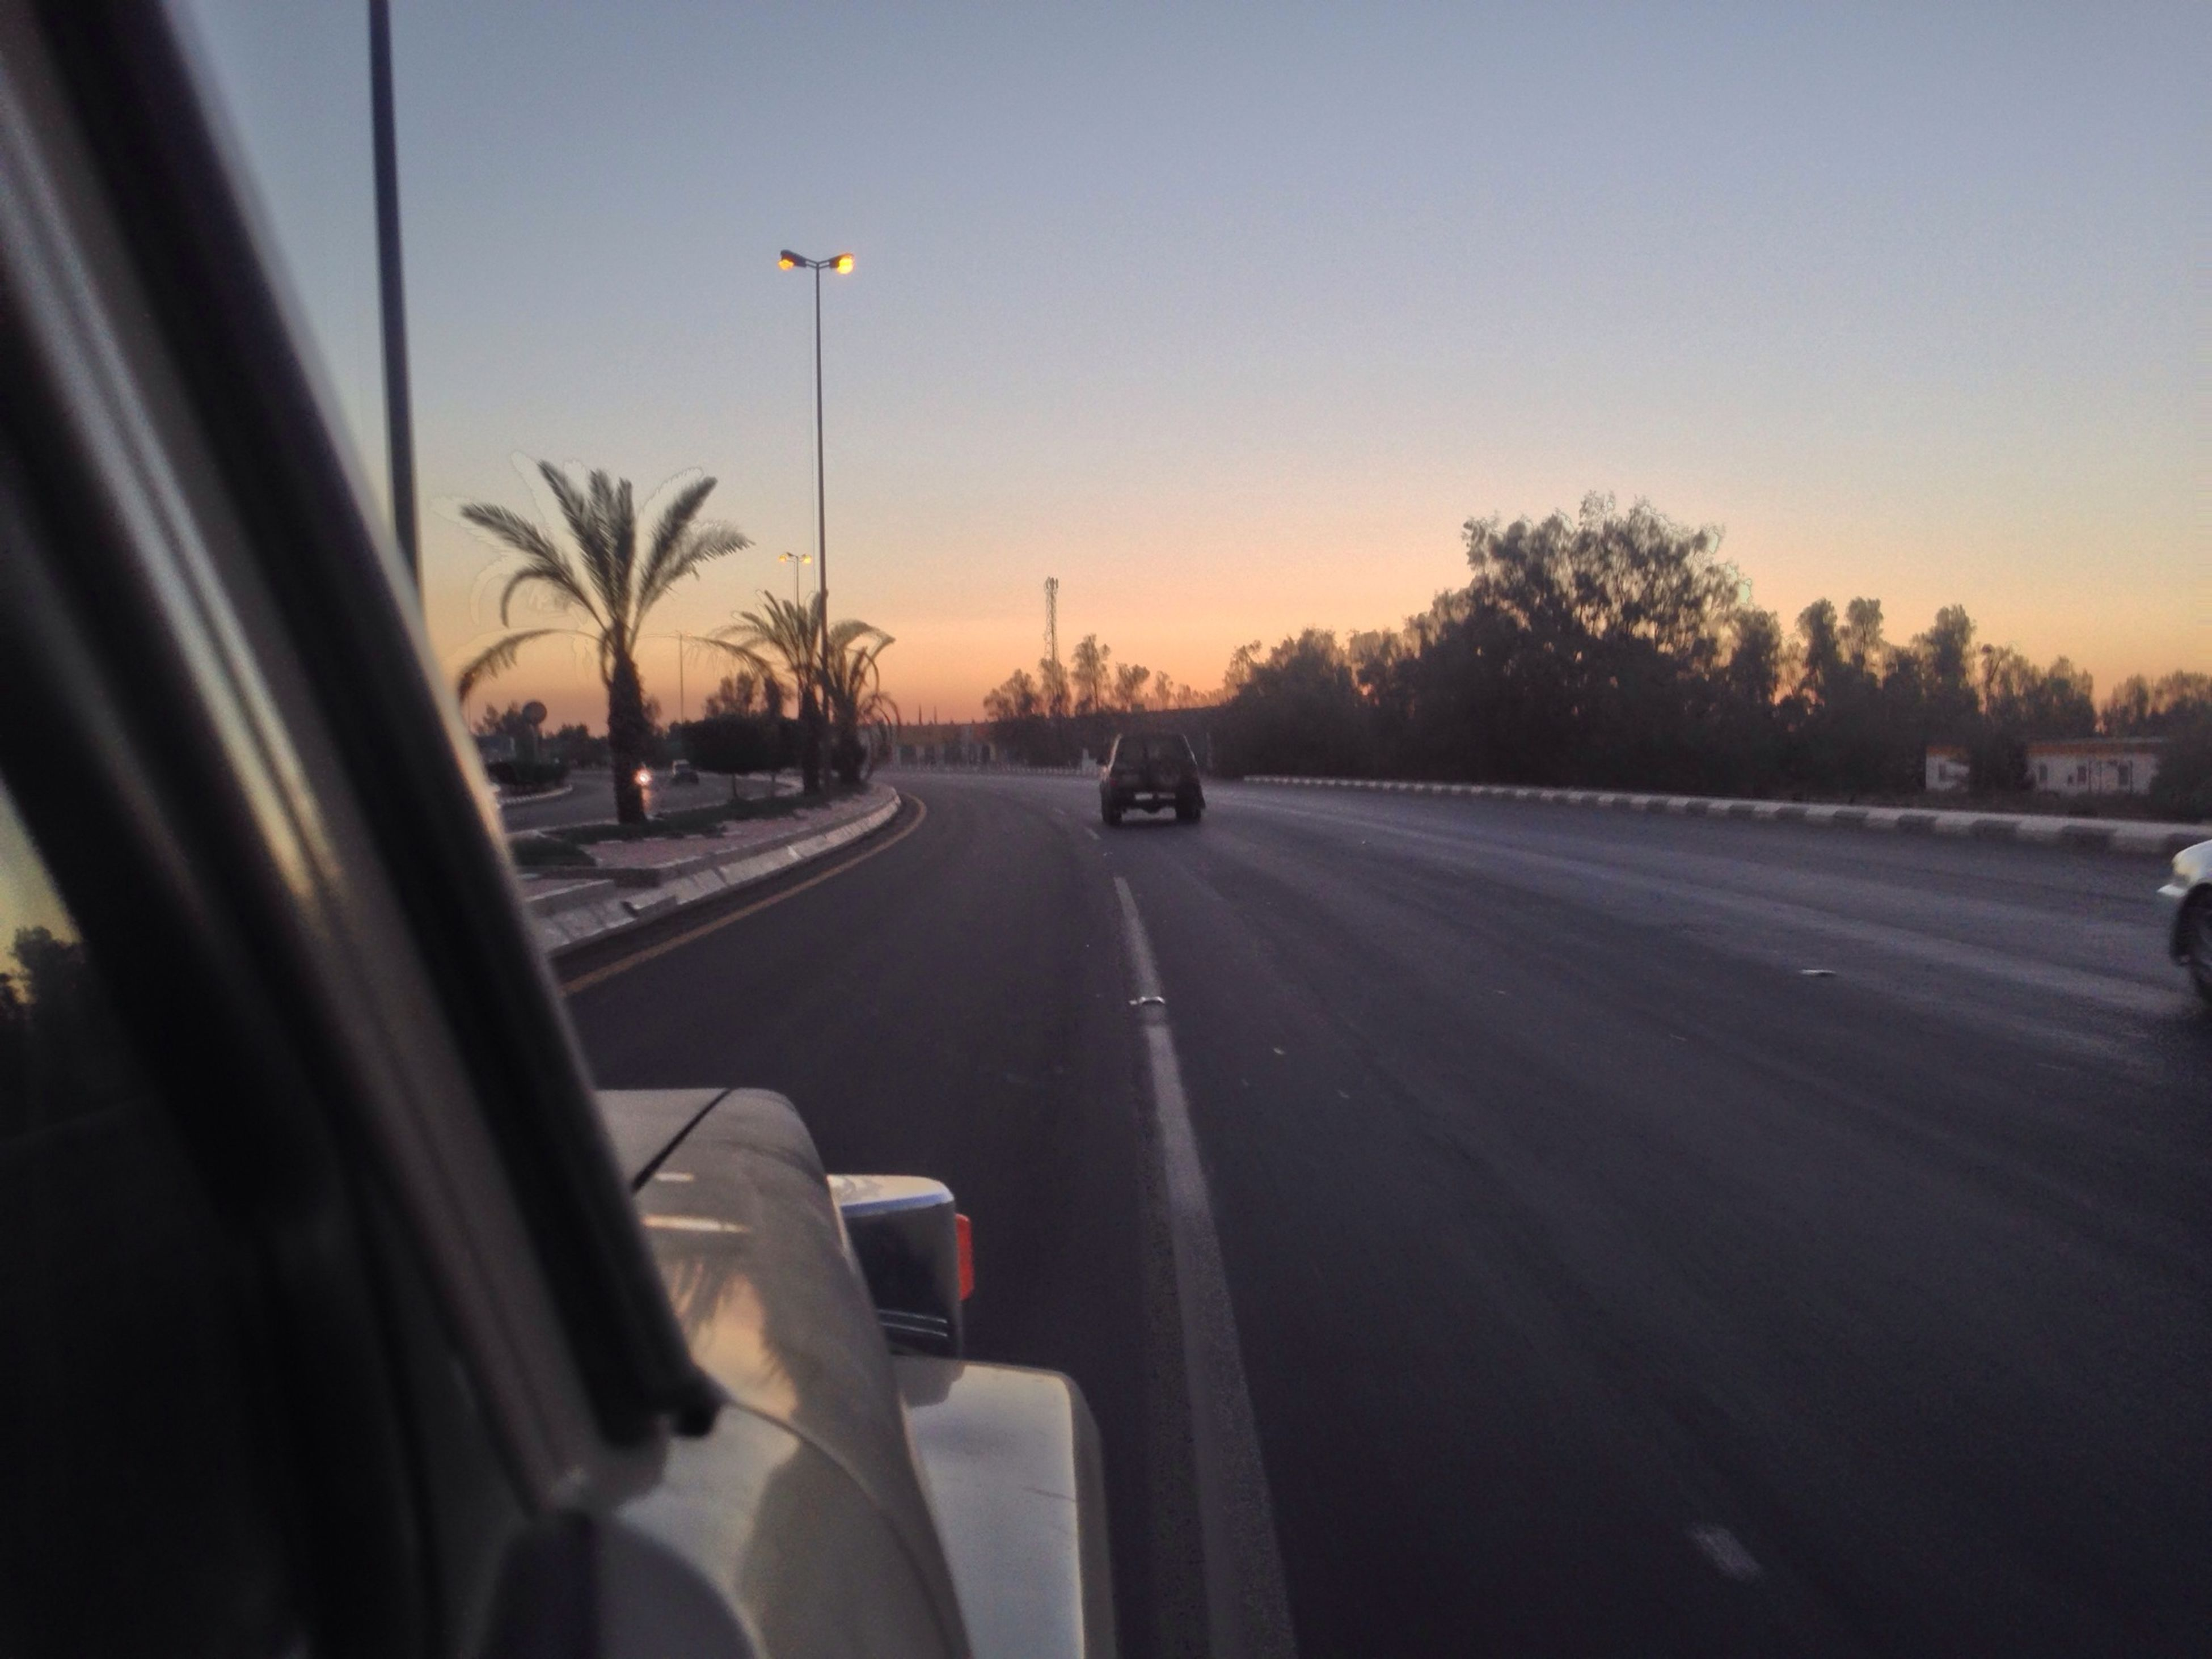 transportation, mode of transport, car, land vehicle, road, on the move, travel, vehicle interior, windshield, sunset, road marking, sky, street, car interior, journey, glass - material, airplane, clear sky, transparent, the way forward